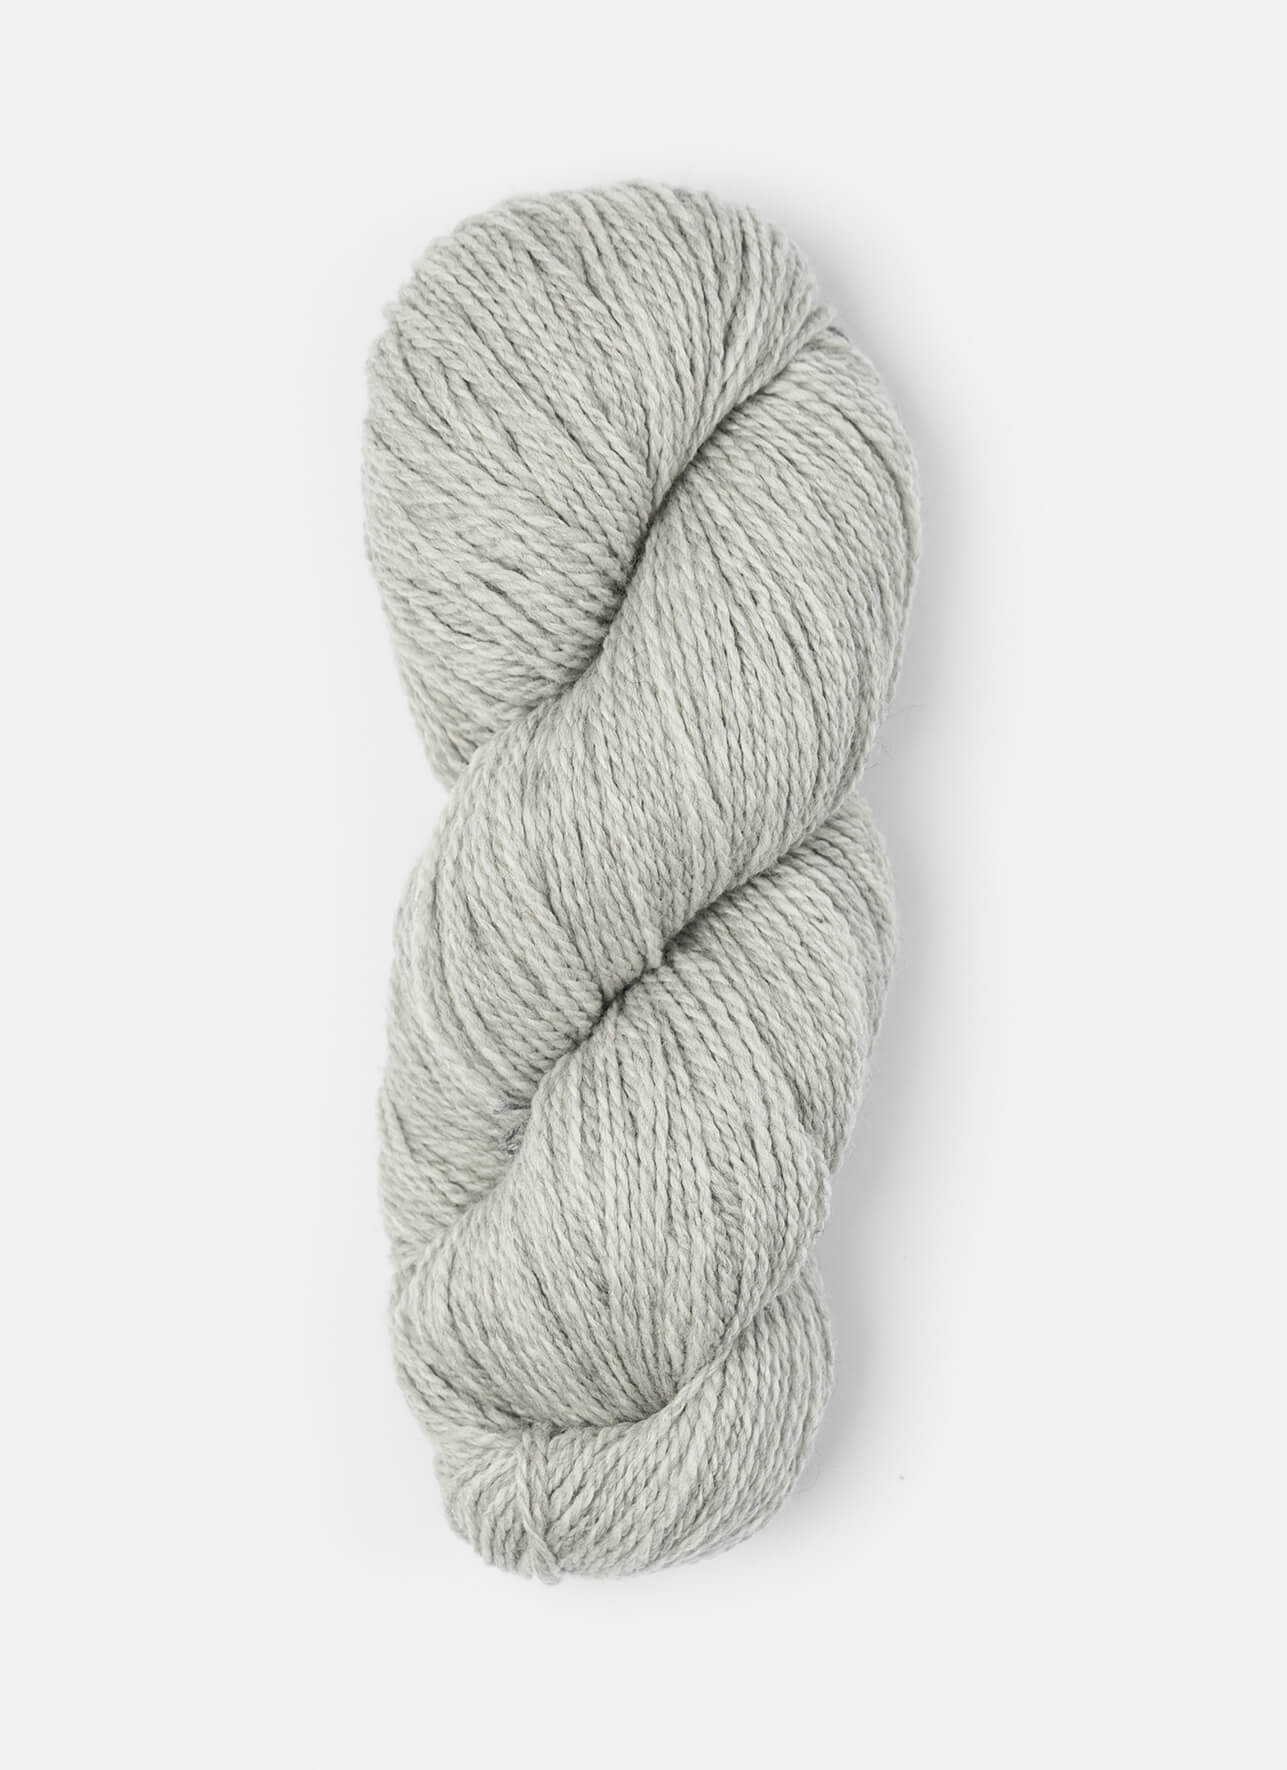 Blue Sky Fibers' Woolstok in 1304L - Grey Harbor